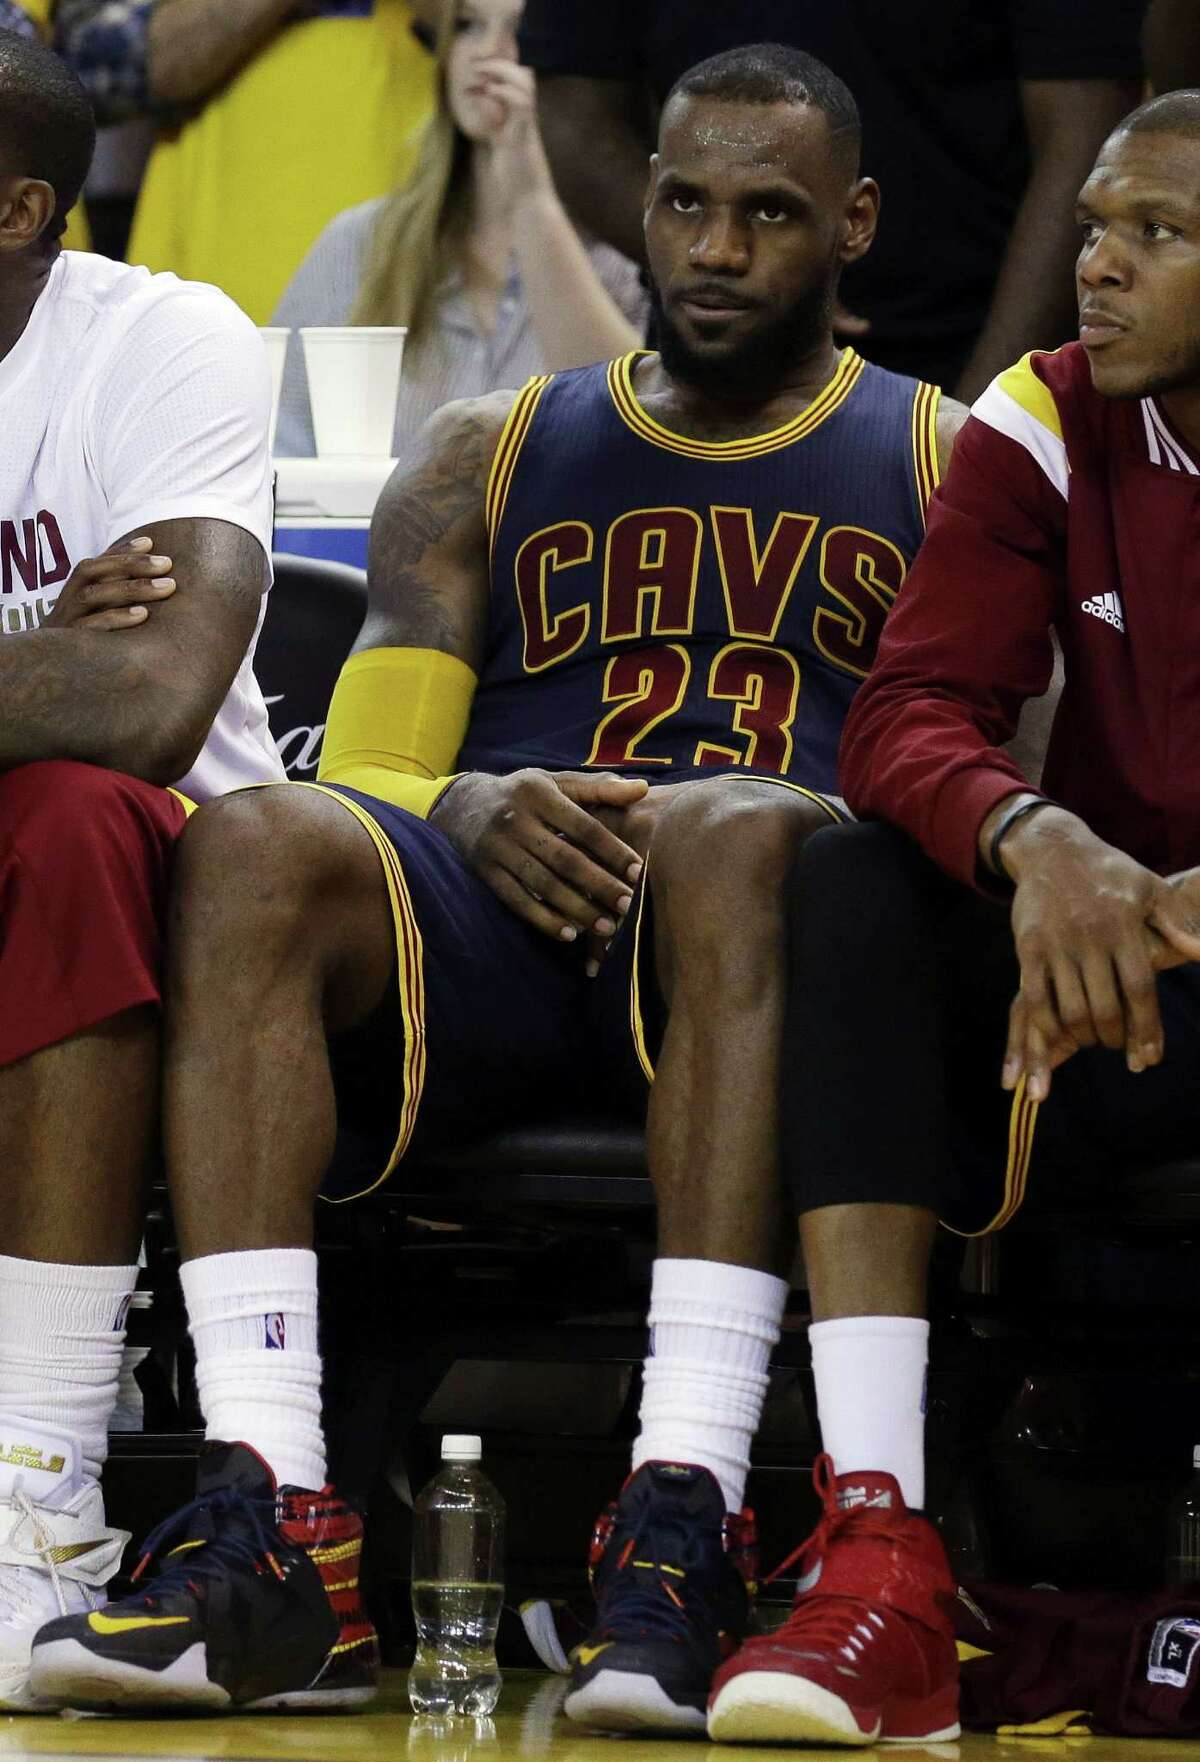 Cleveland Cavaliers forward LeBron James sits on the bench during the second half of Game 5 of the NBA Finals on Sunday in Oakland, Calif.